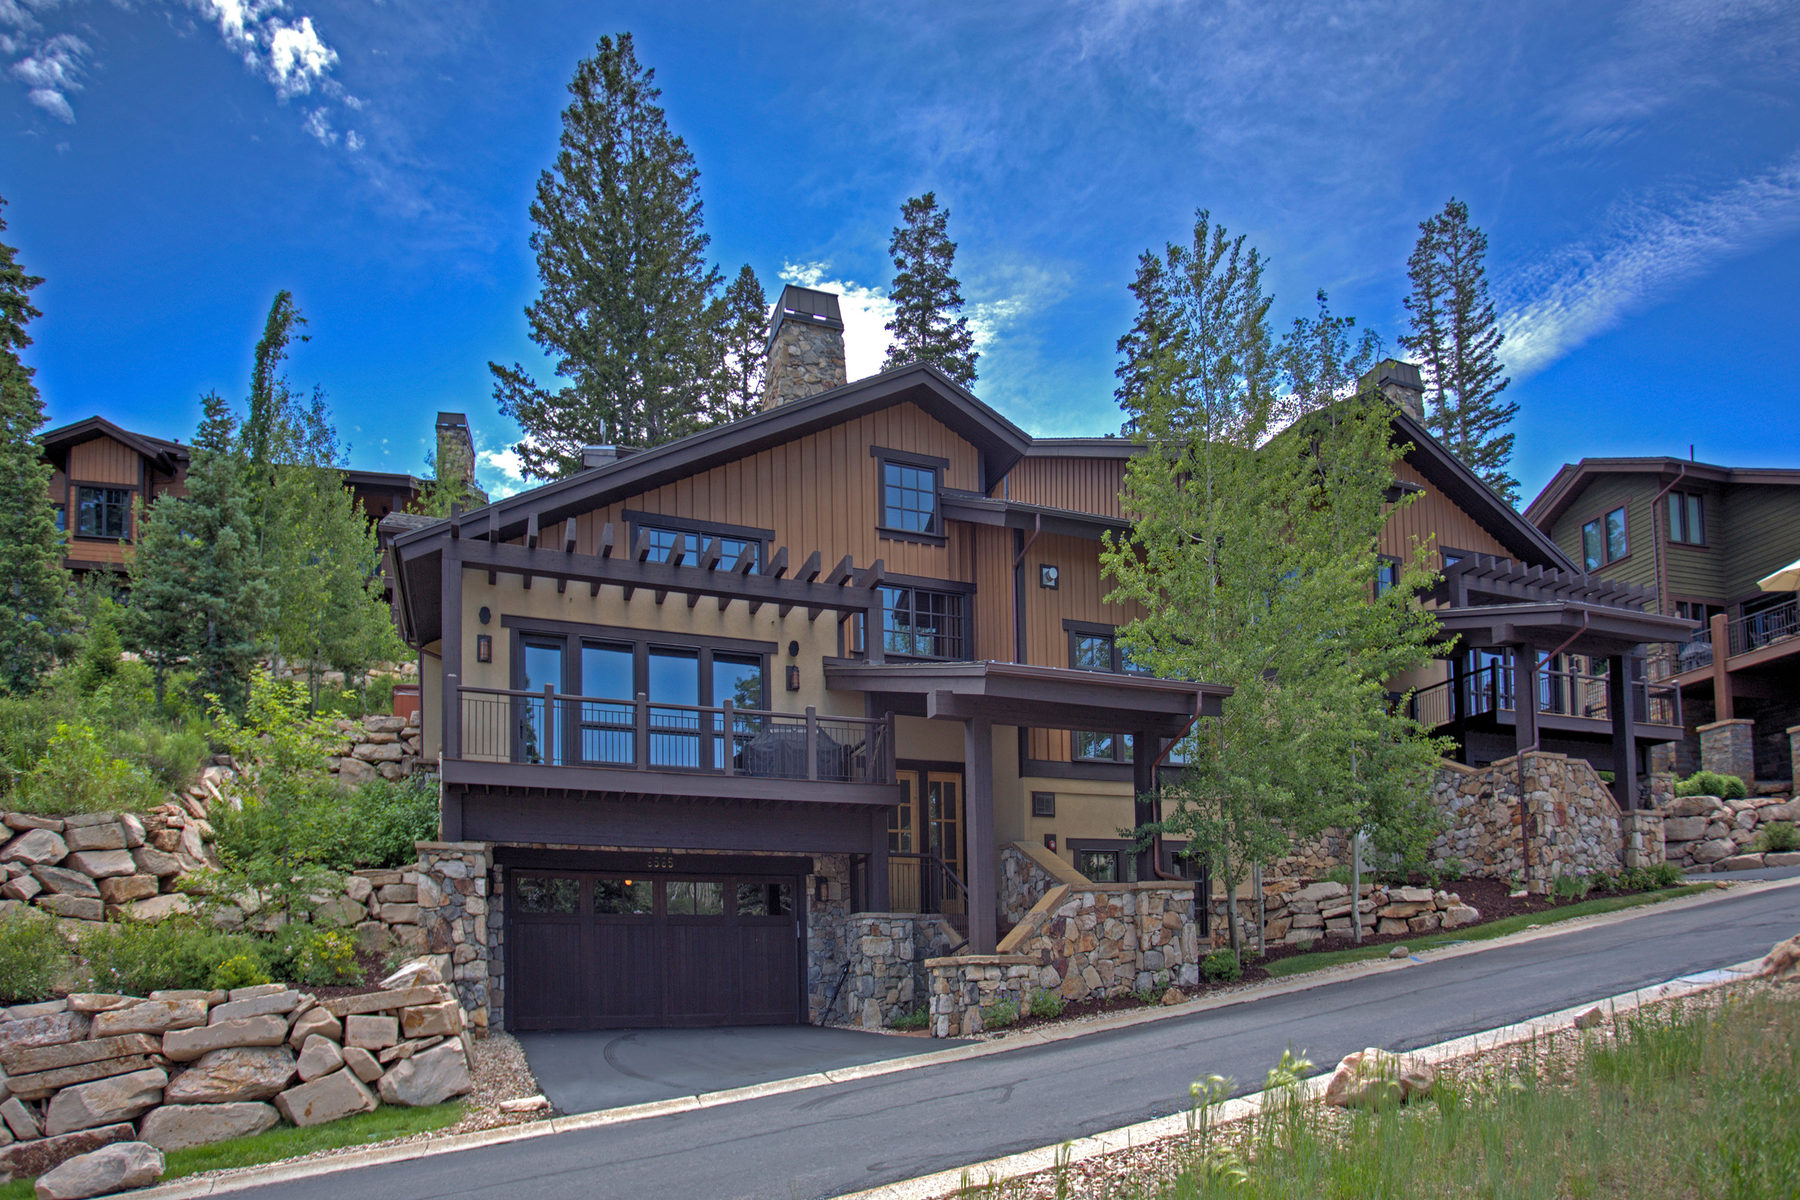 Moradia em banda para Venda às Outstanding Views and Finishes 6565 Lookout Dr Unit 22 Park City, Utah 84060 Estados Unidos